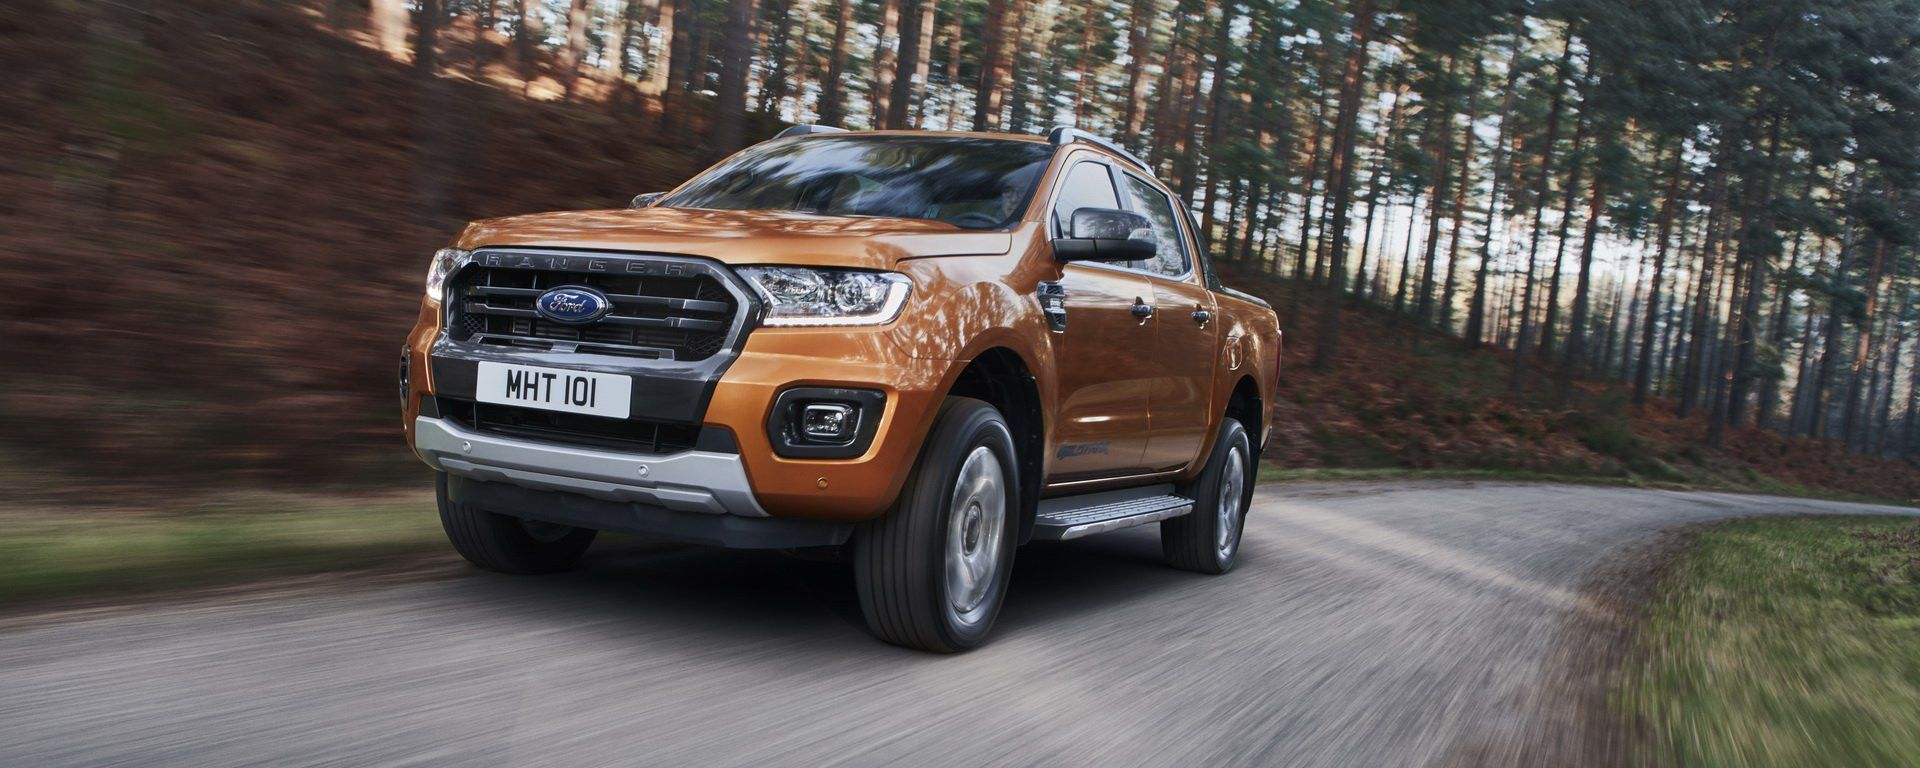 ford ranger  nuovo motore diesel  il restyling motorbox